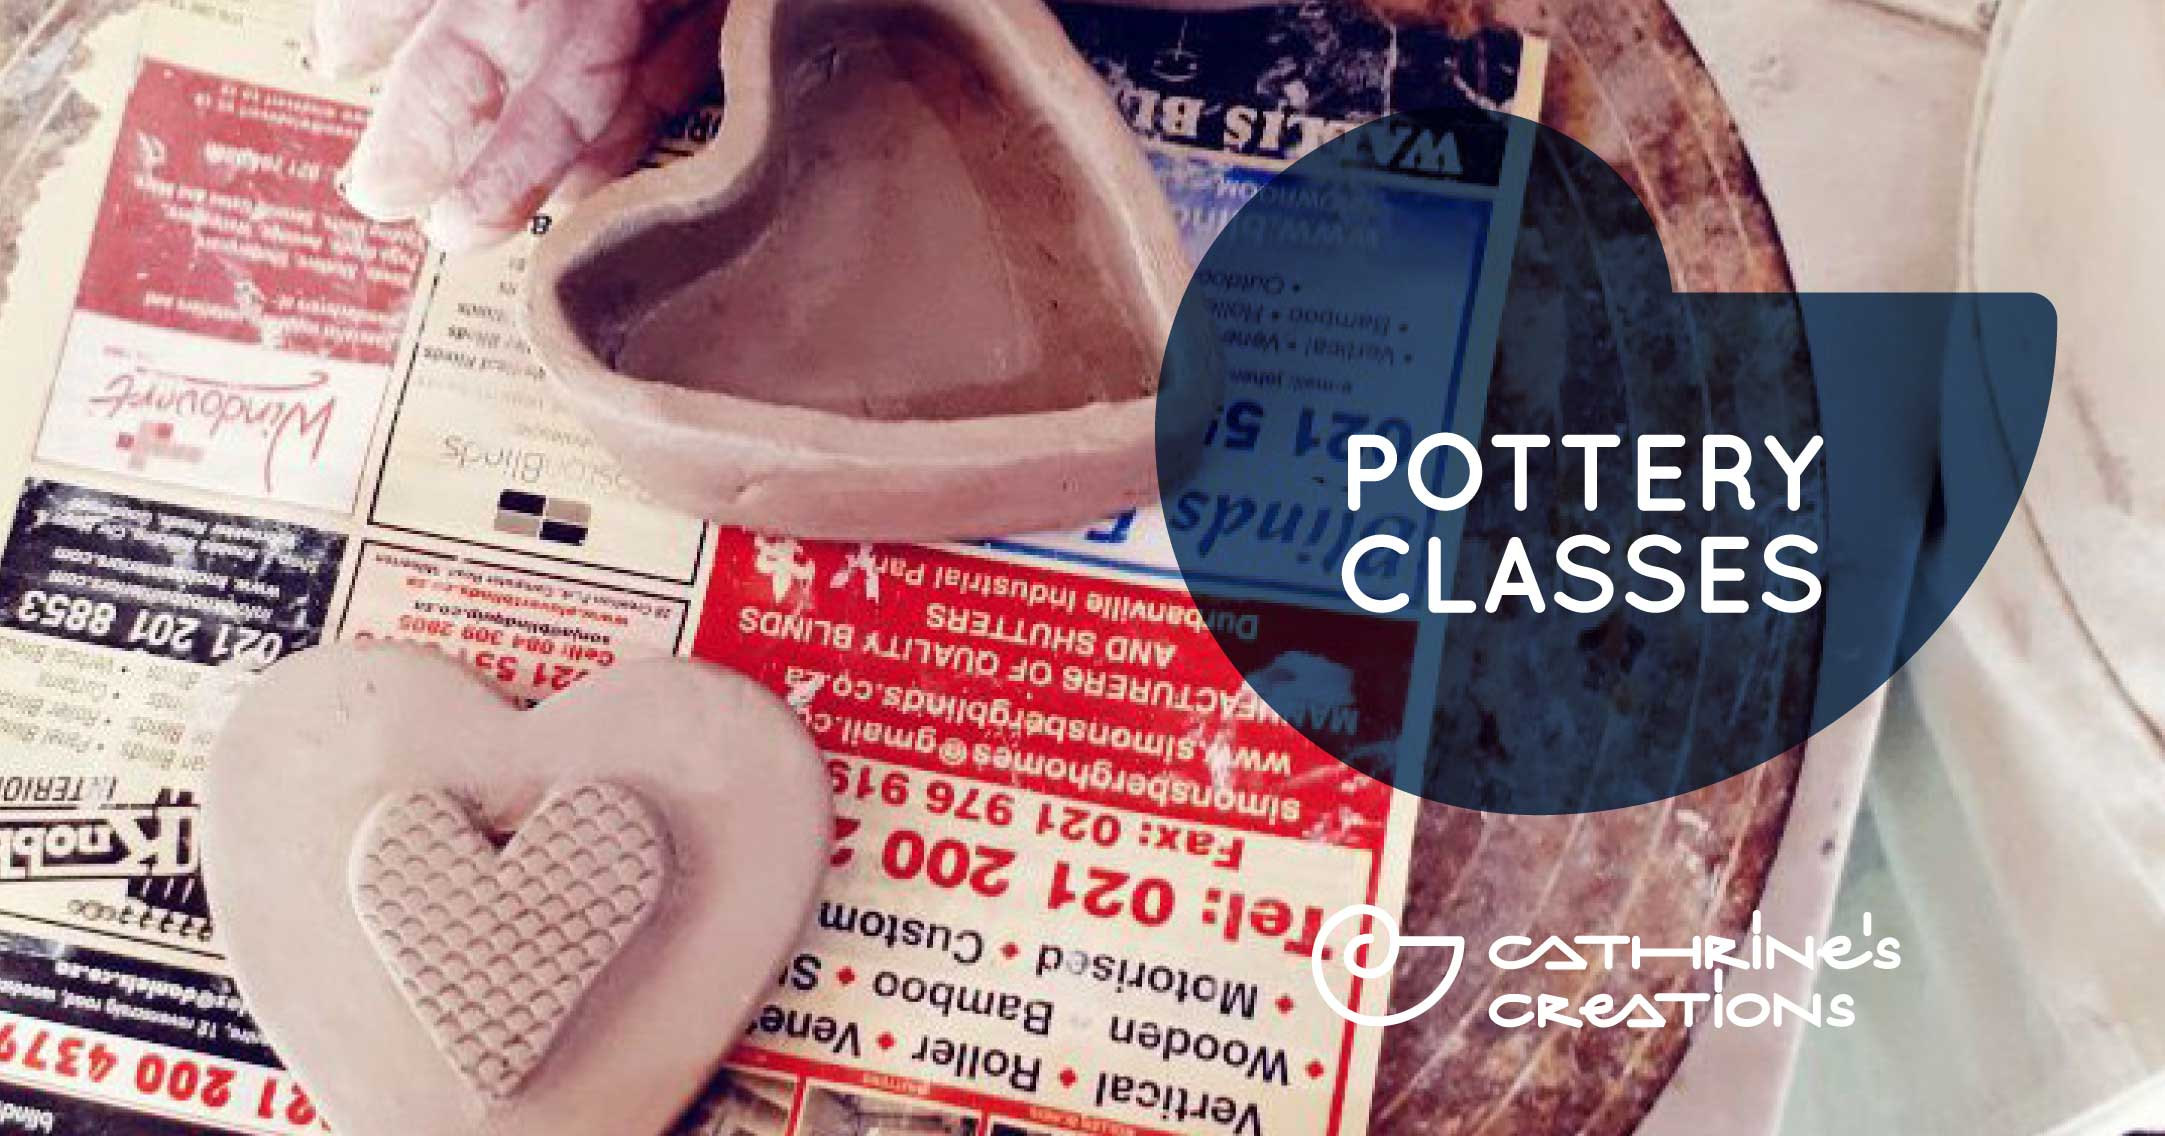 Pottery classes in South Peninsula